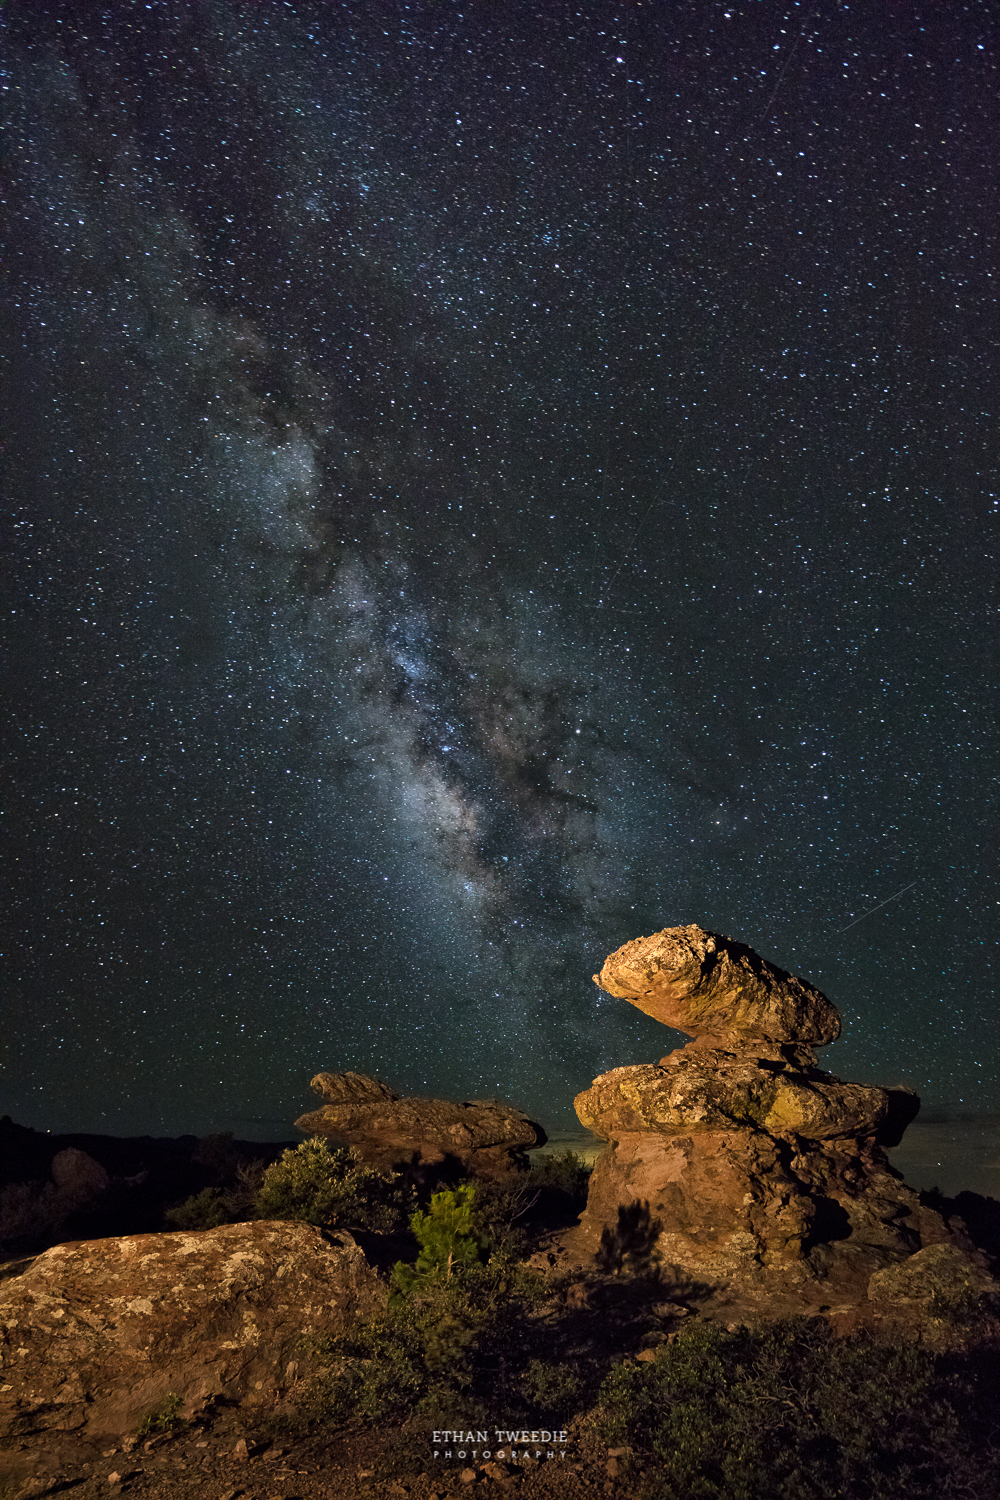 During my scouting hike I found this rock feature relatively close to the parking lot, made for a nice foreground with the Milky Way.  I used my Lowel GL-1 LED Tungsten Color Temp light to mimic the non existent moonlight.